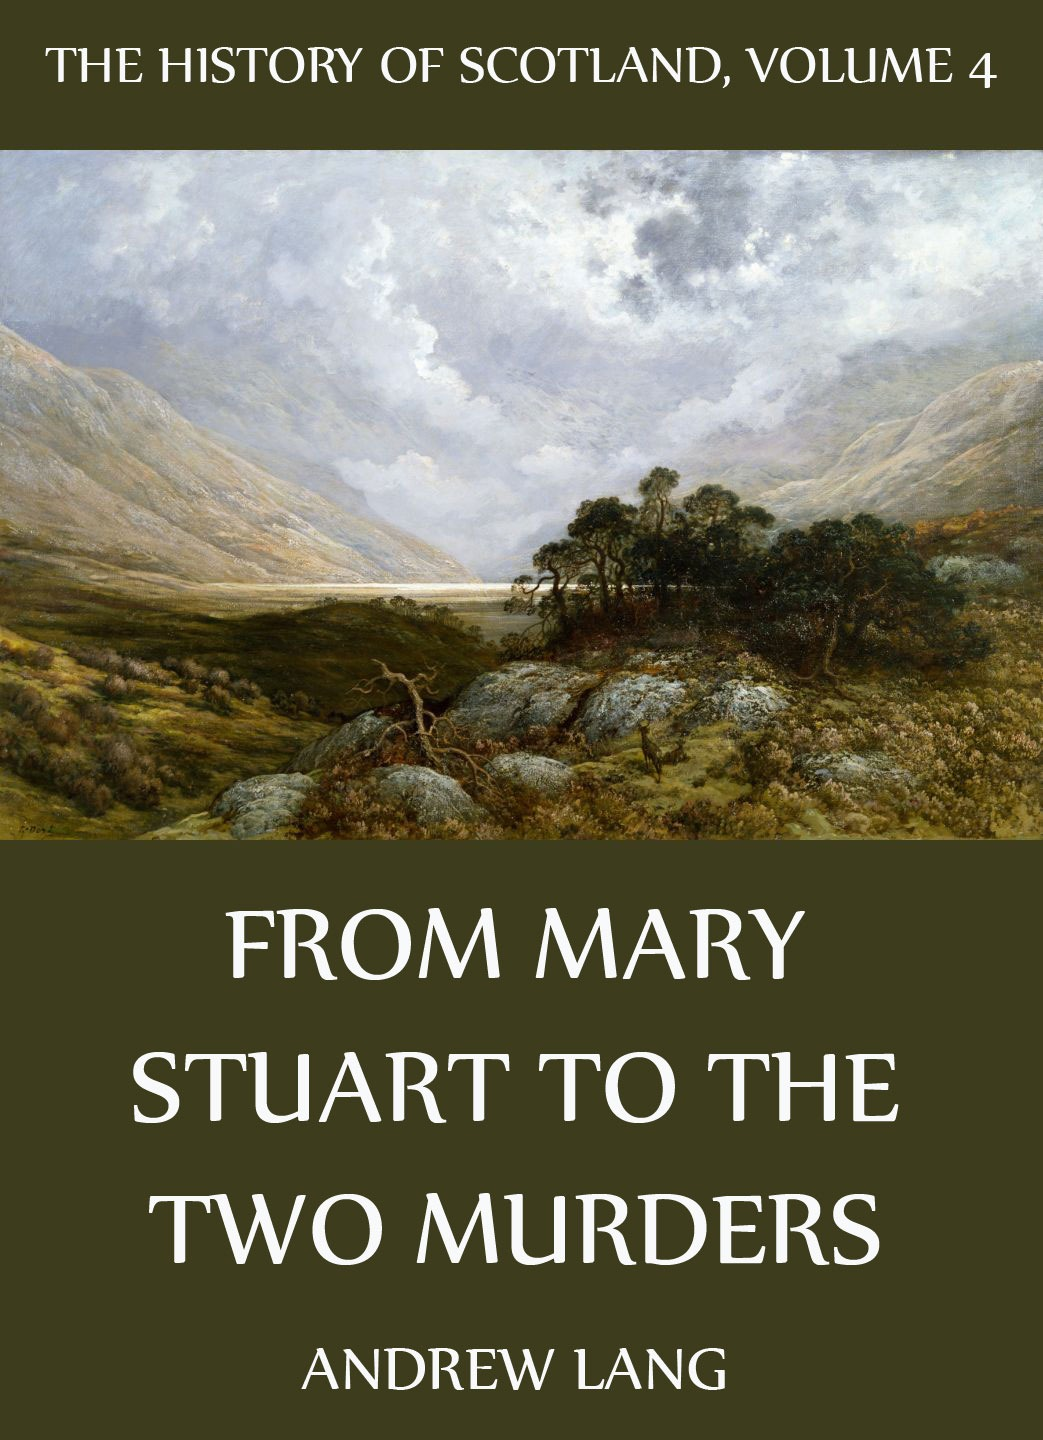 Andrew Lang The History Of Scotland - Volume 4: From Mary Stuart To The Two Murders sean lang european history for dummies